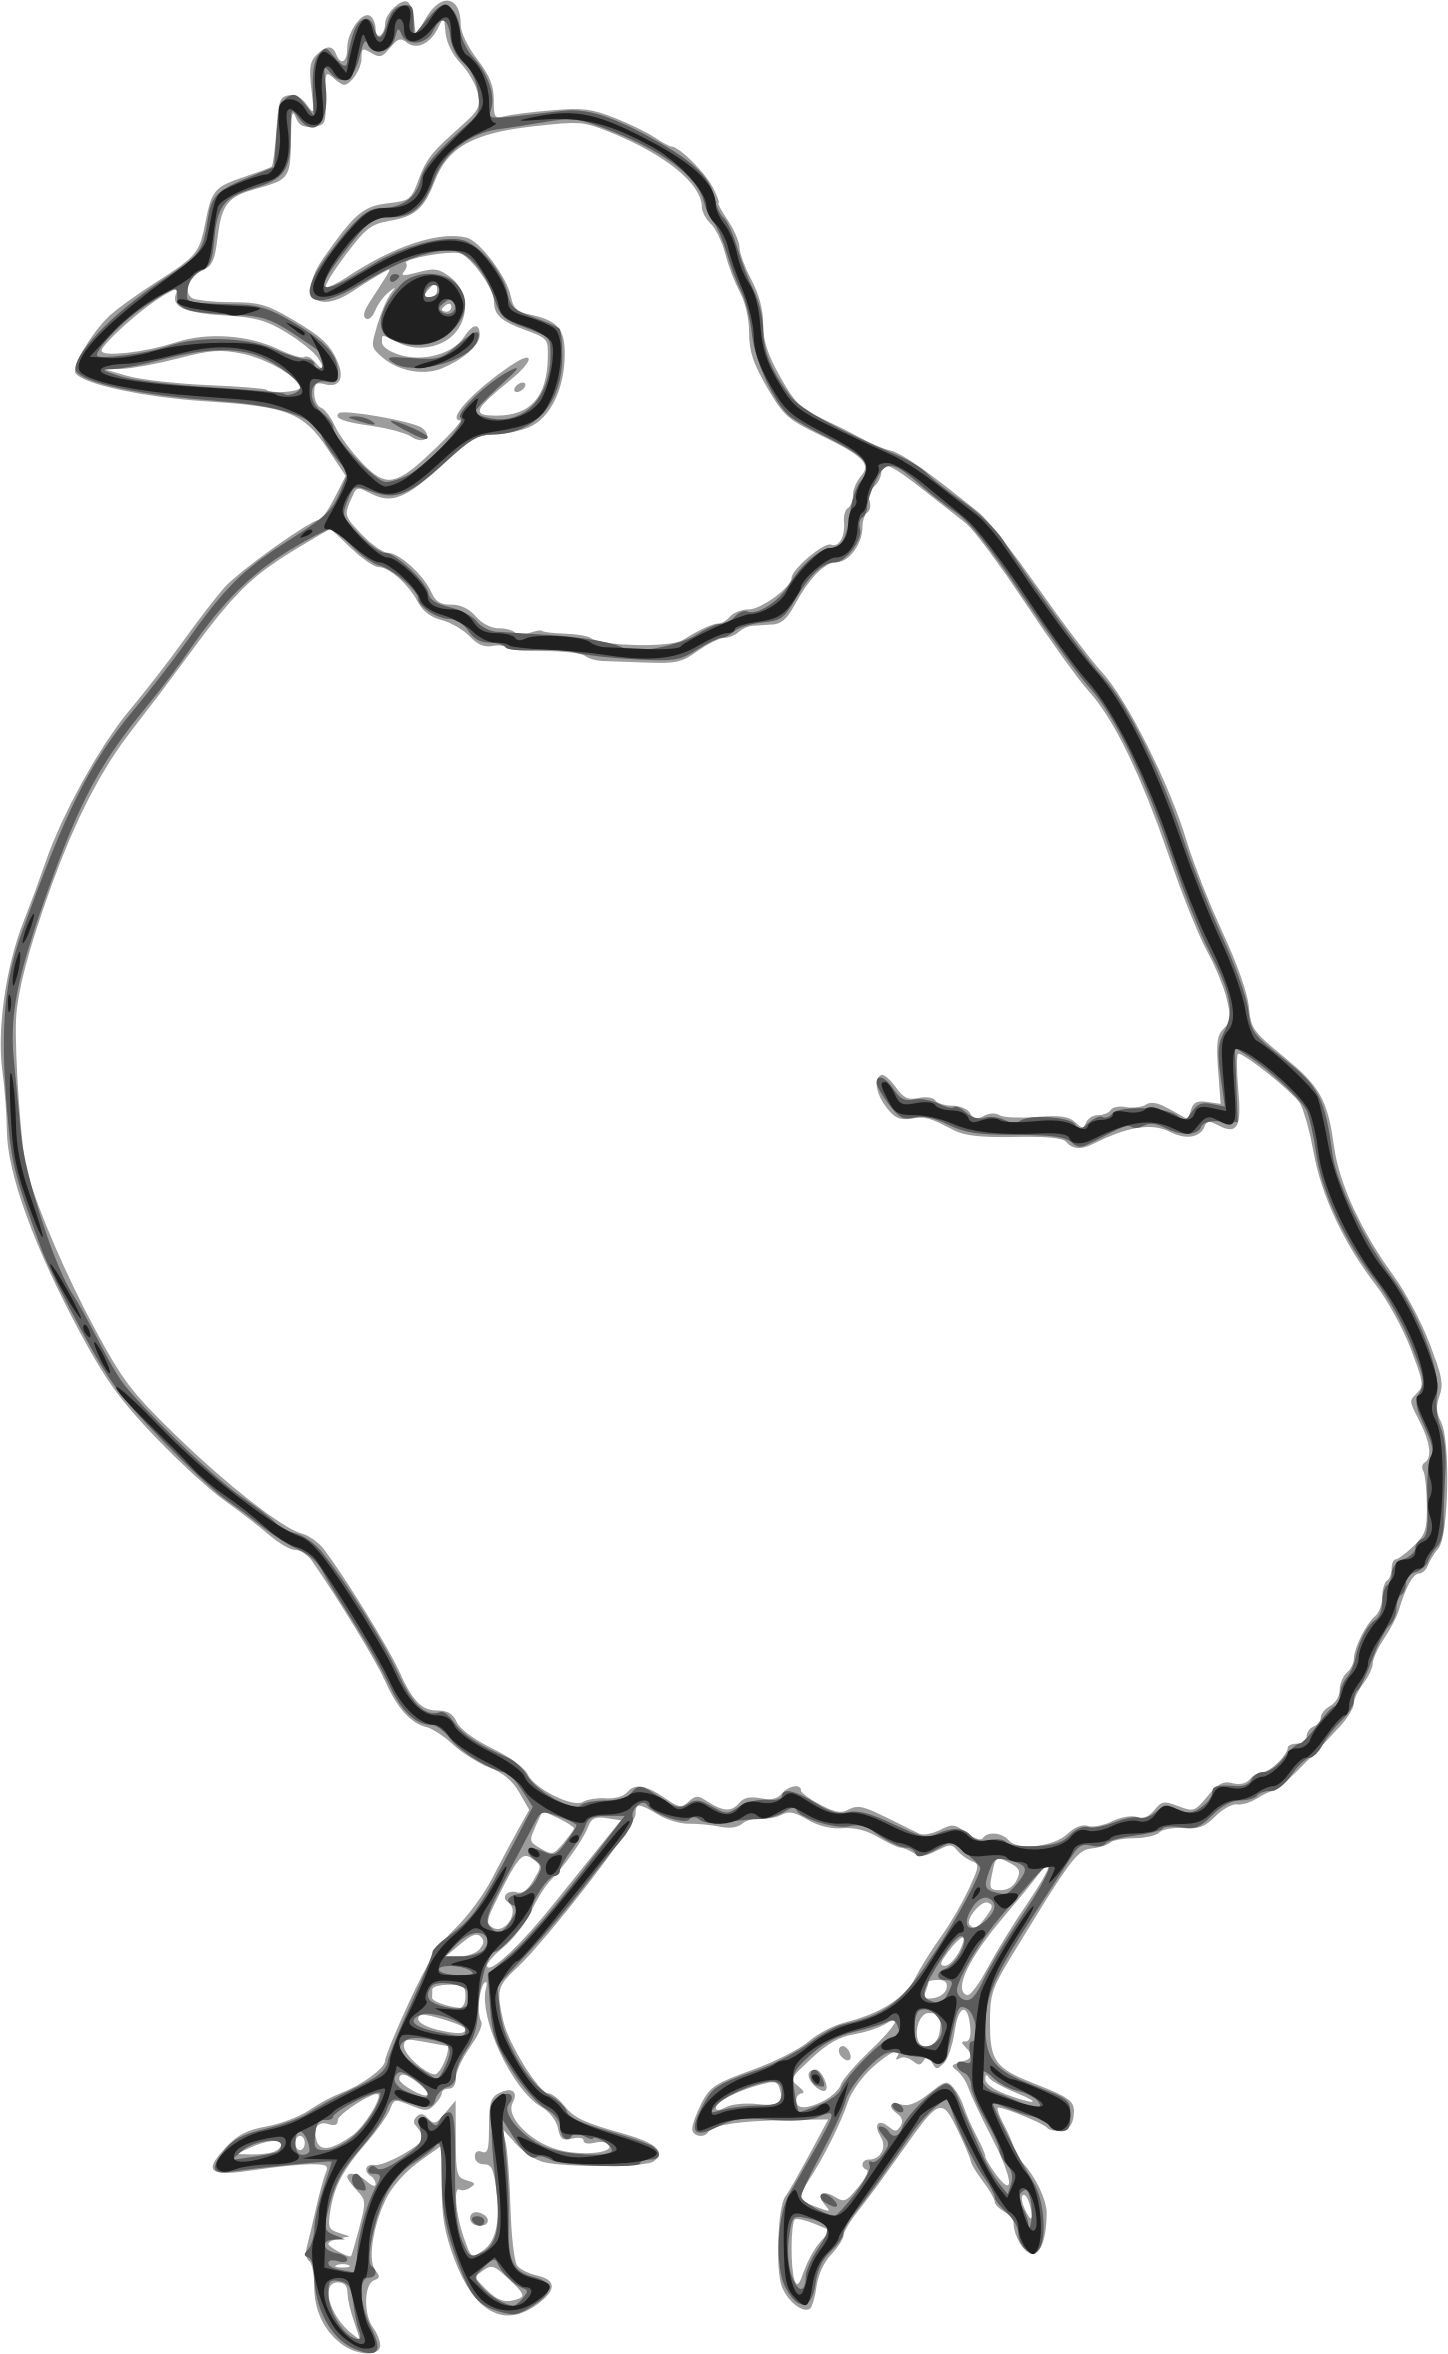 Hen clipart drawing. Outline big image png